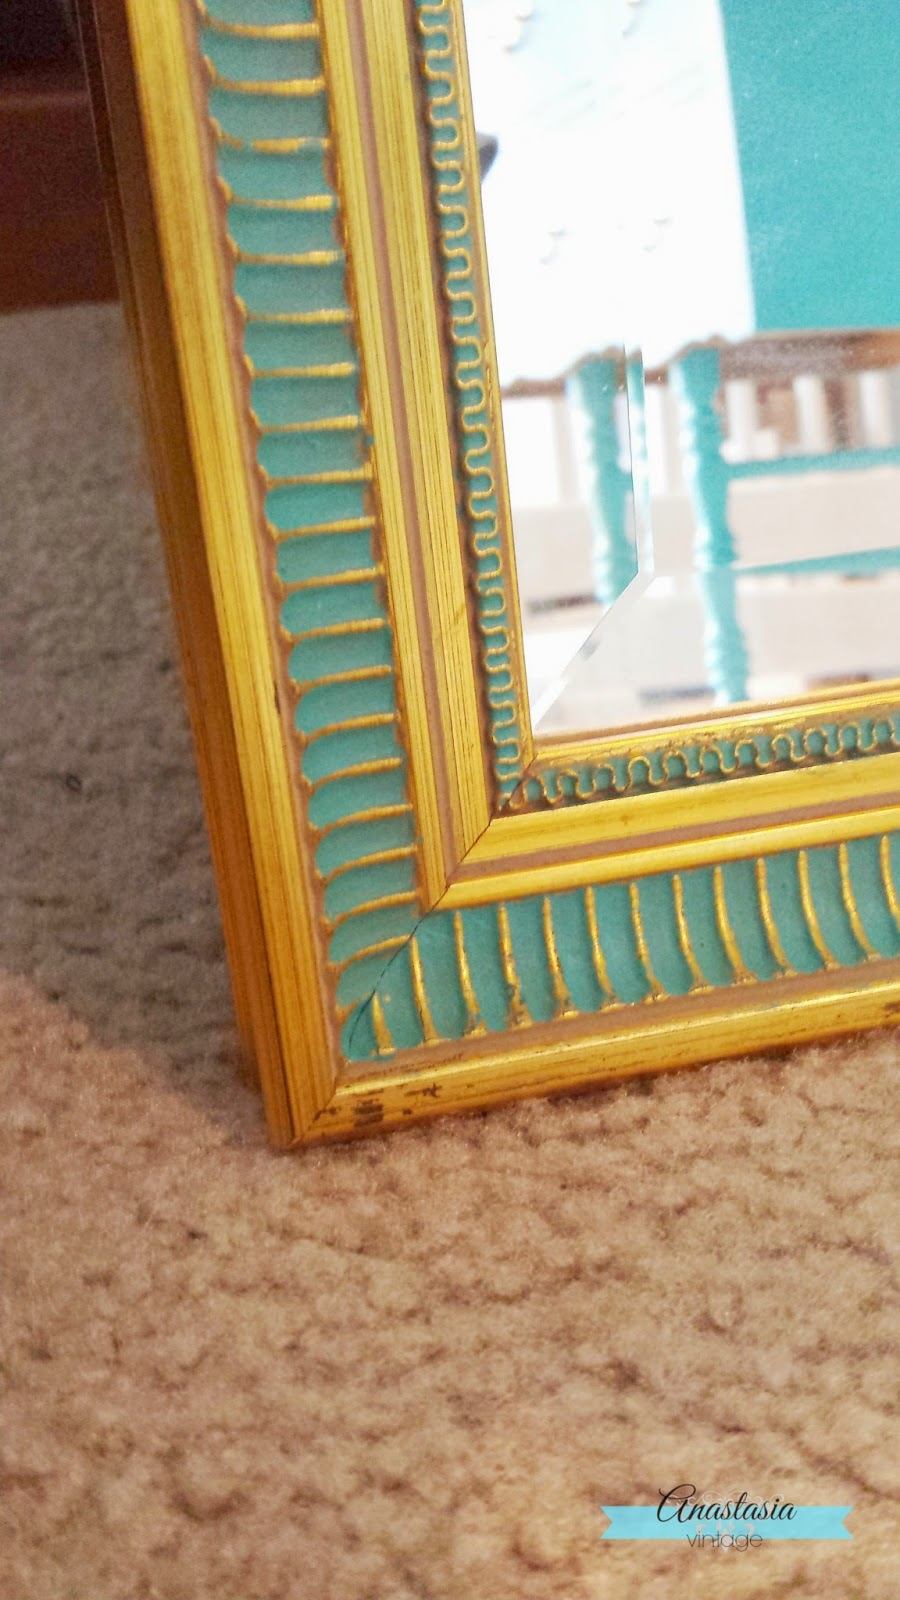 teal & gold mirror close up